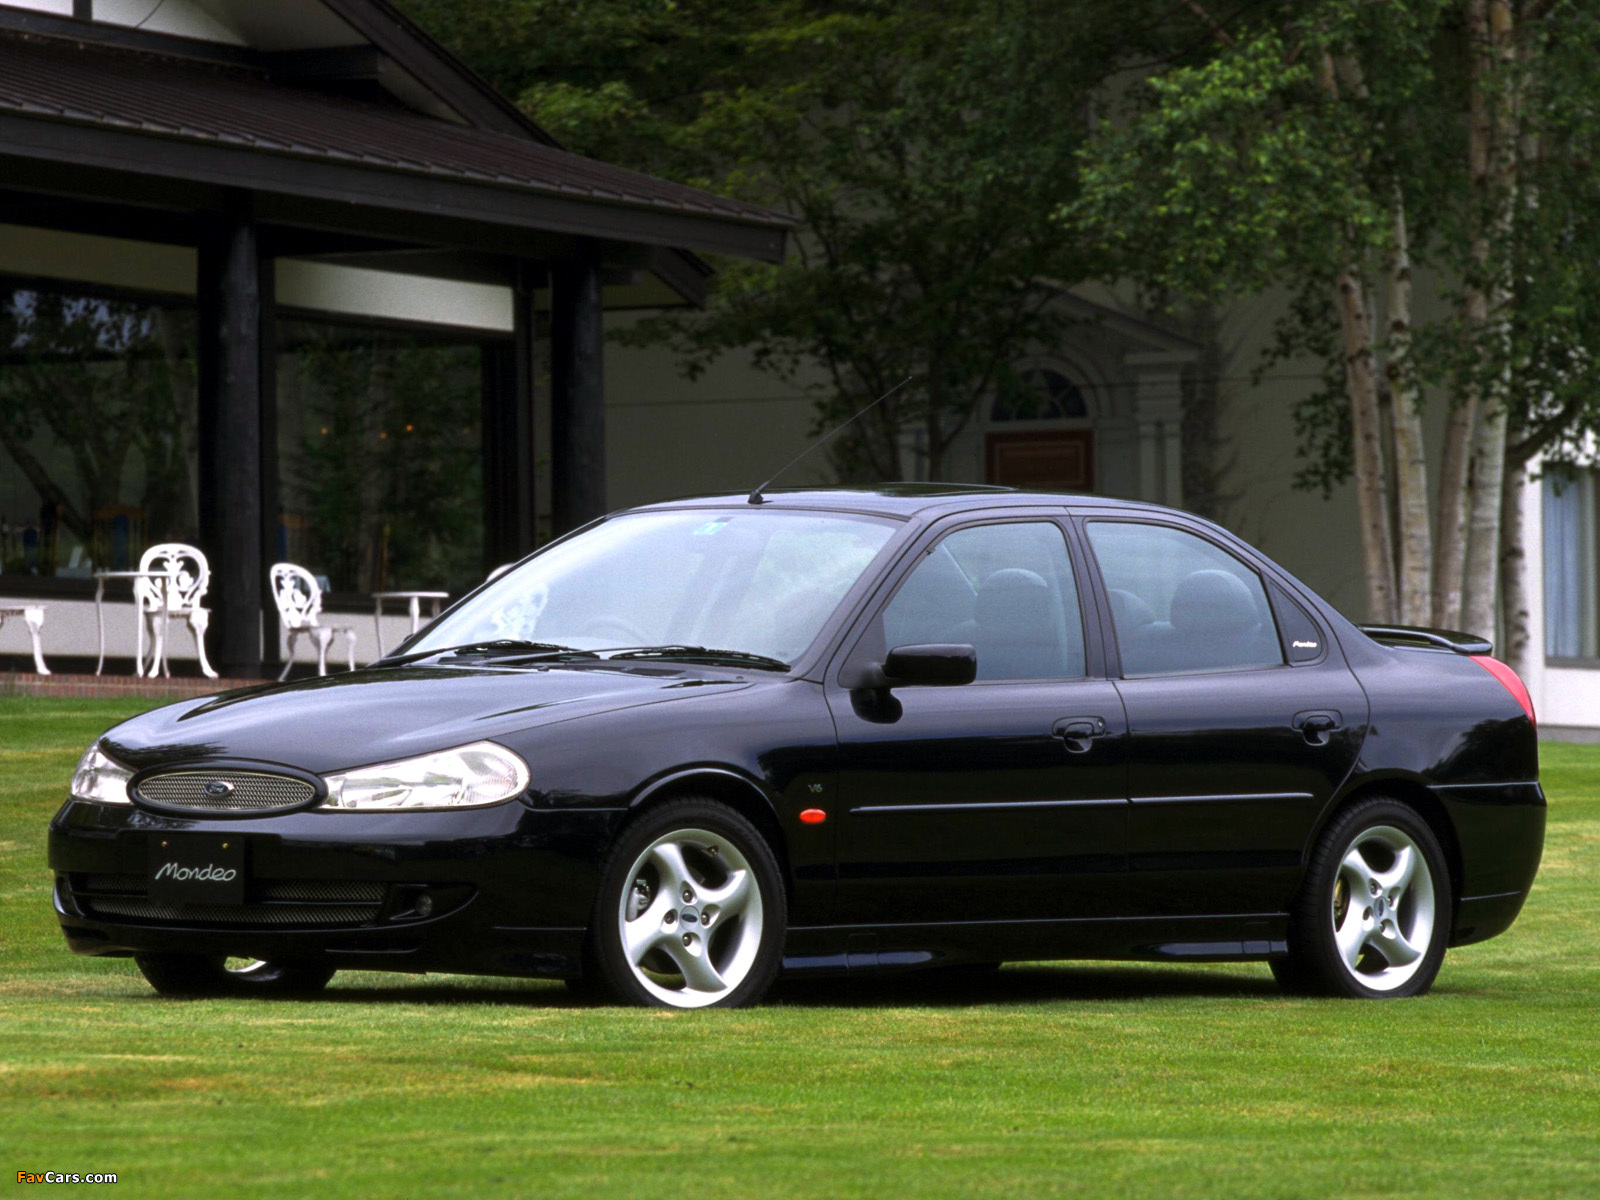 1996 Ford Mondeo #6